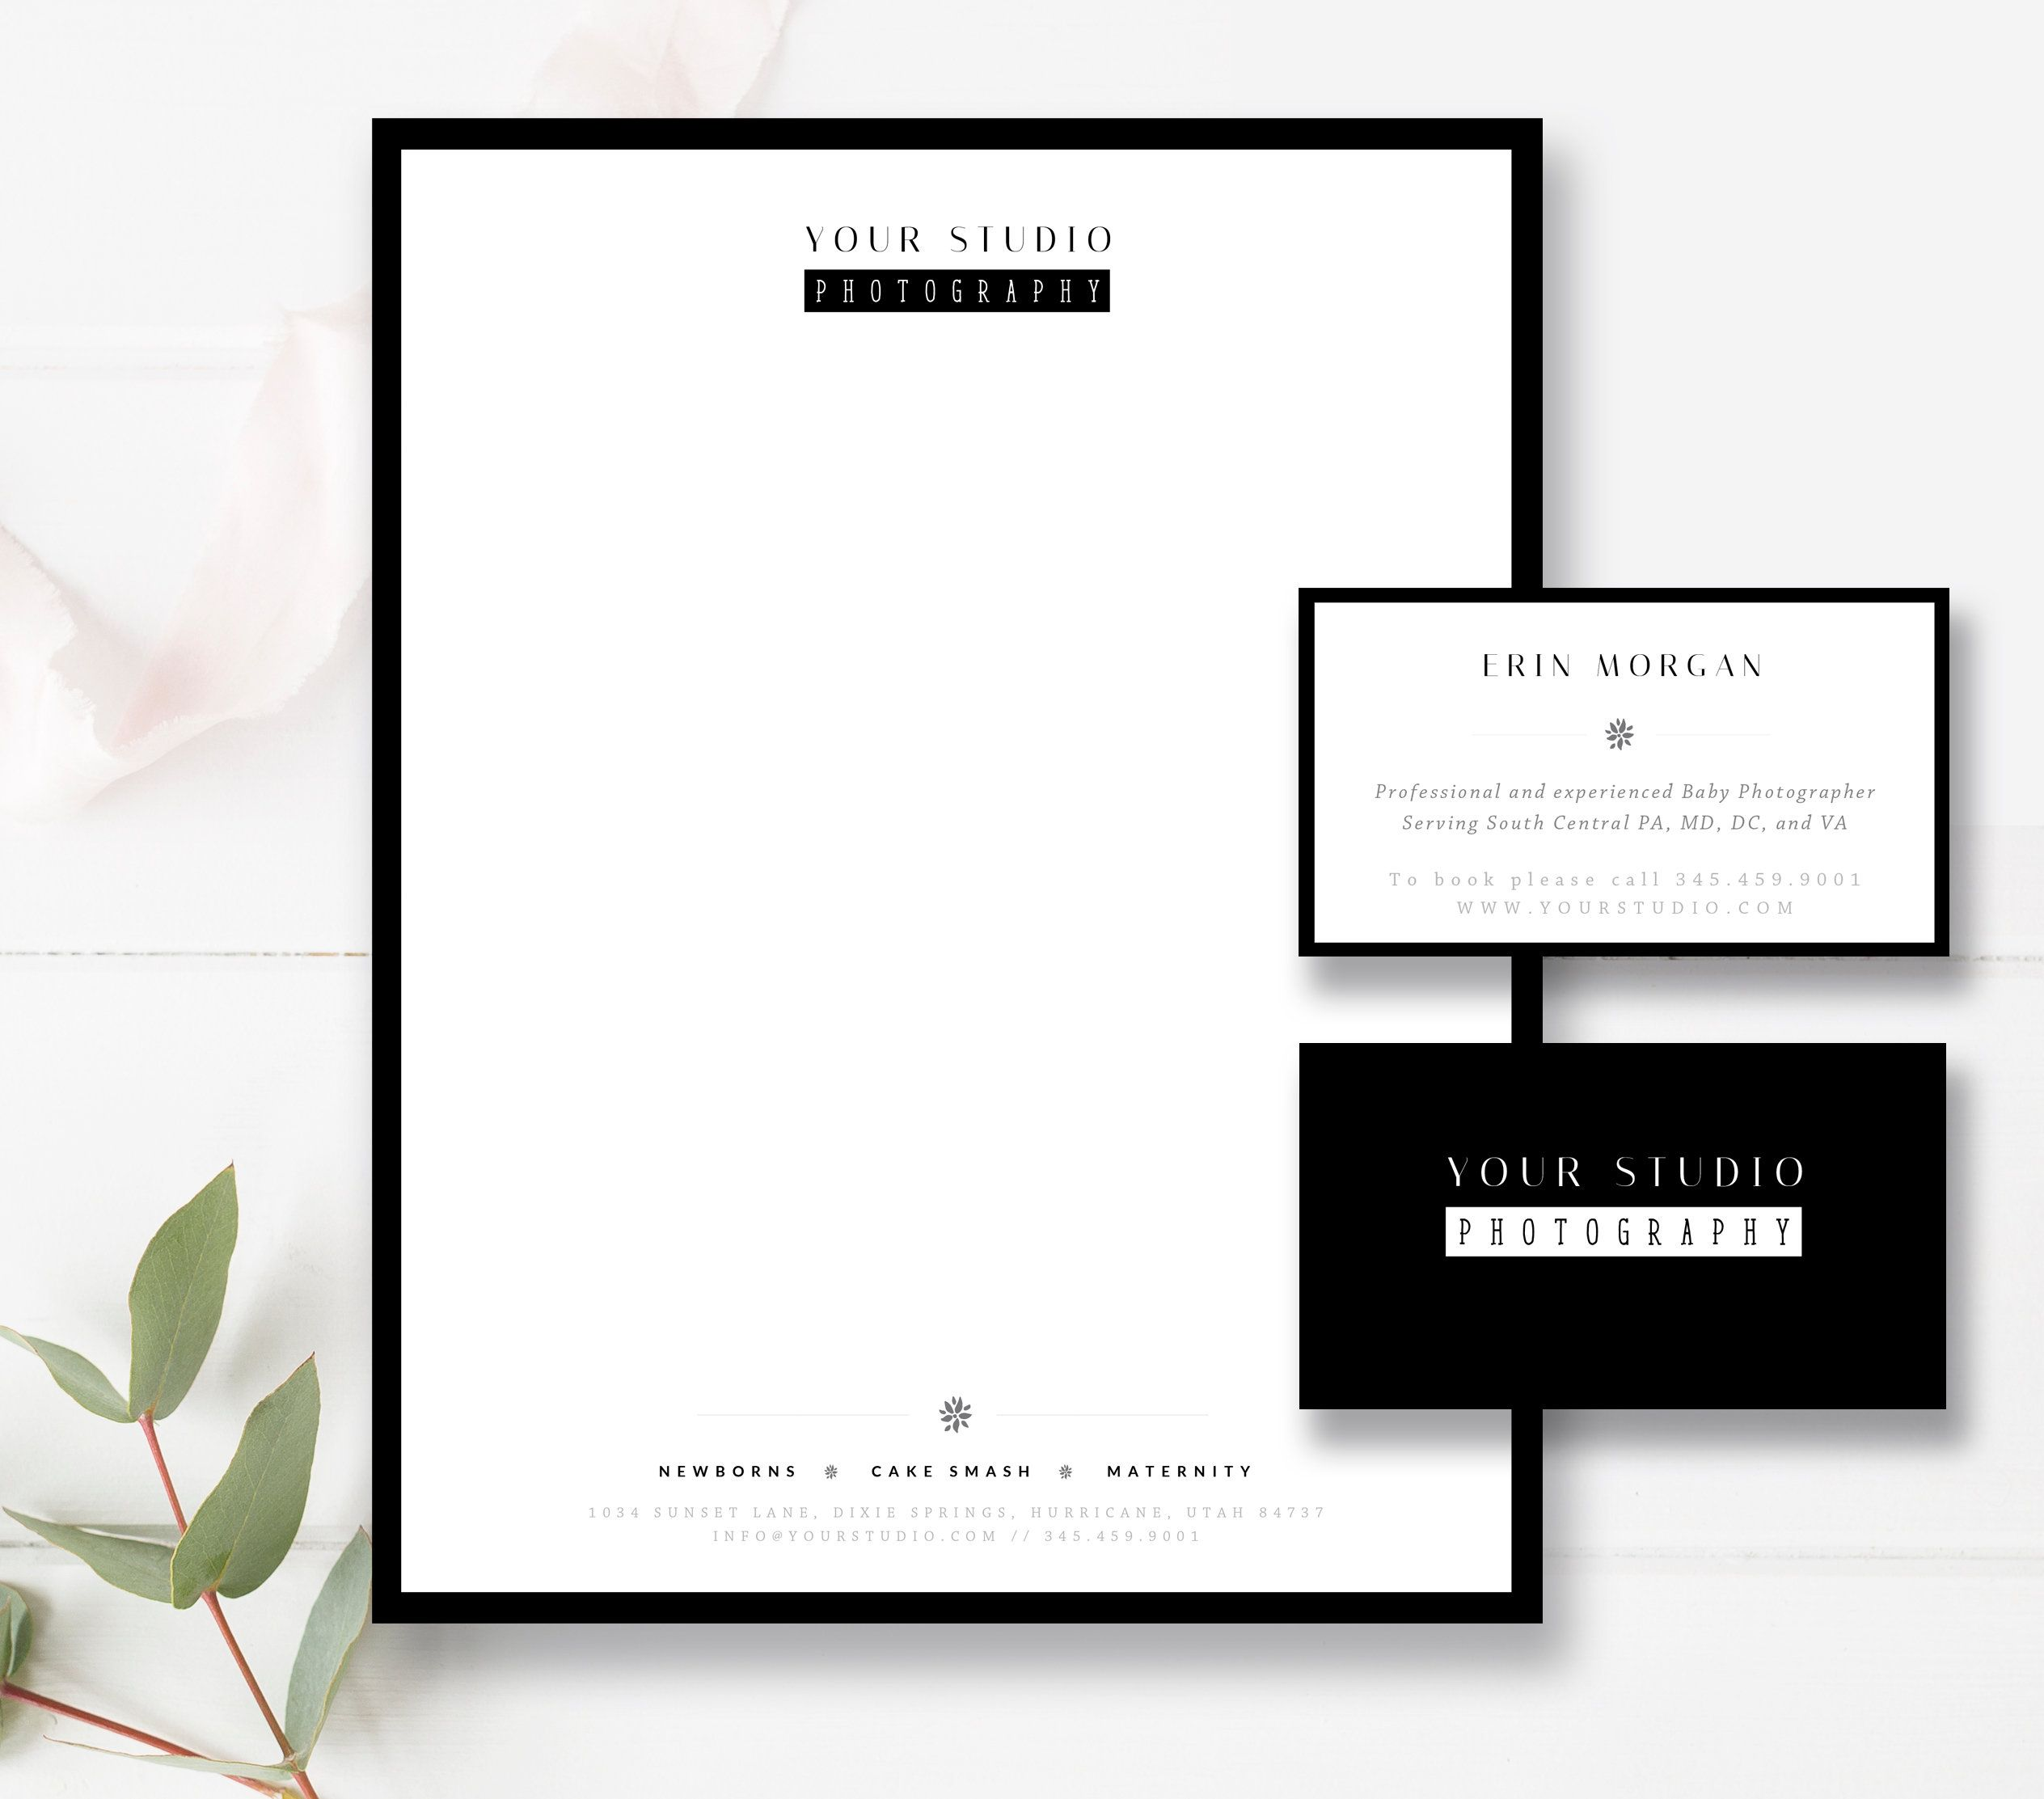 letterhead template with business card, corporate career objective for technical resume qa team lead examples format mba marketing fresher pdf download